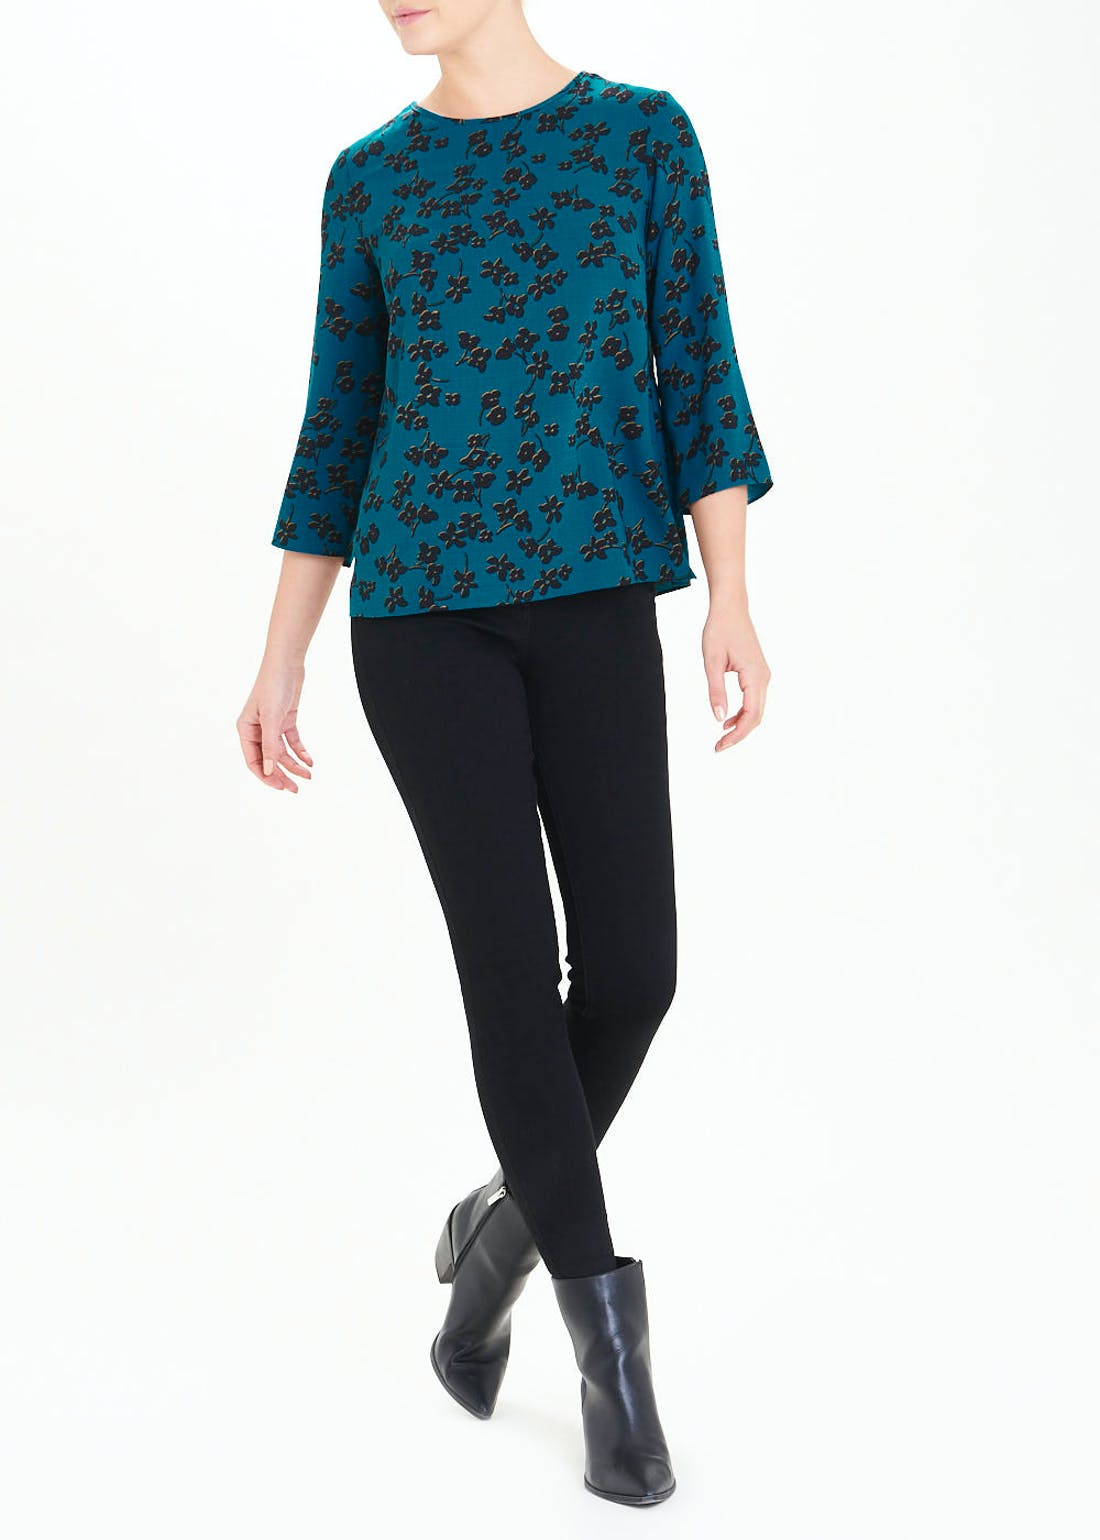 3/4 Sleeve Teal Floral Woven Top